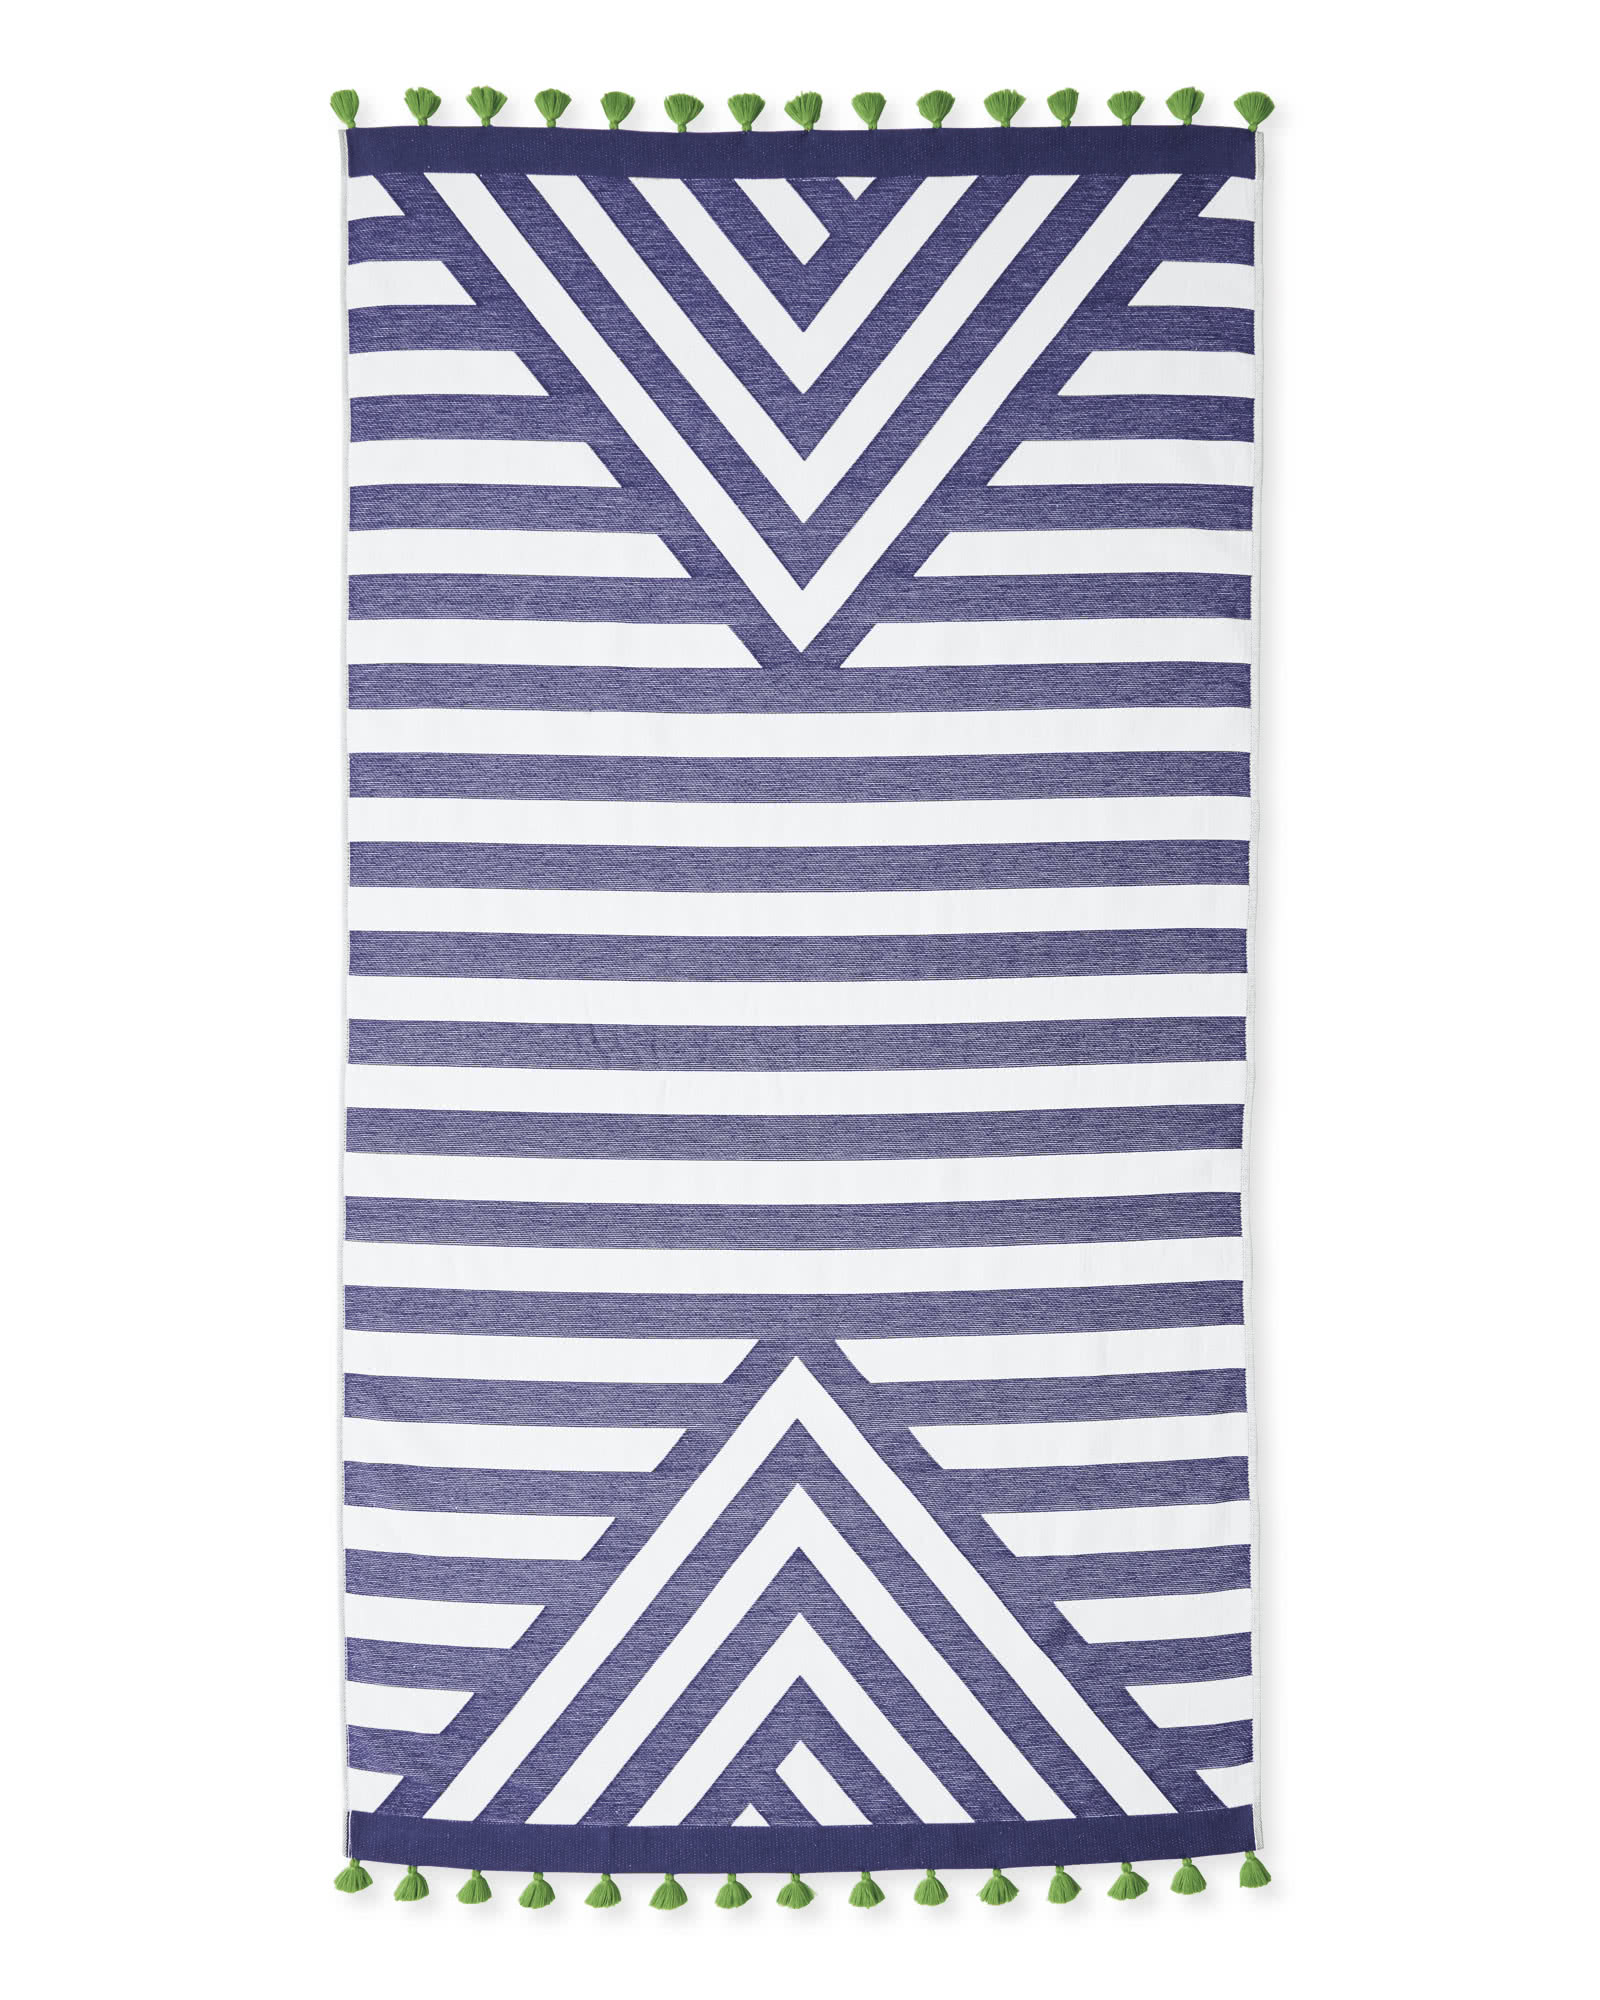 Sydney Beach Towel